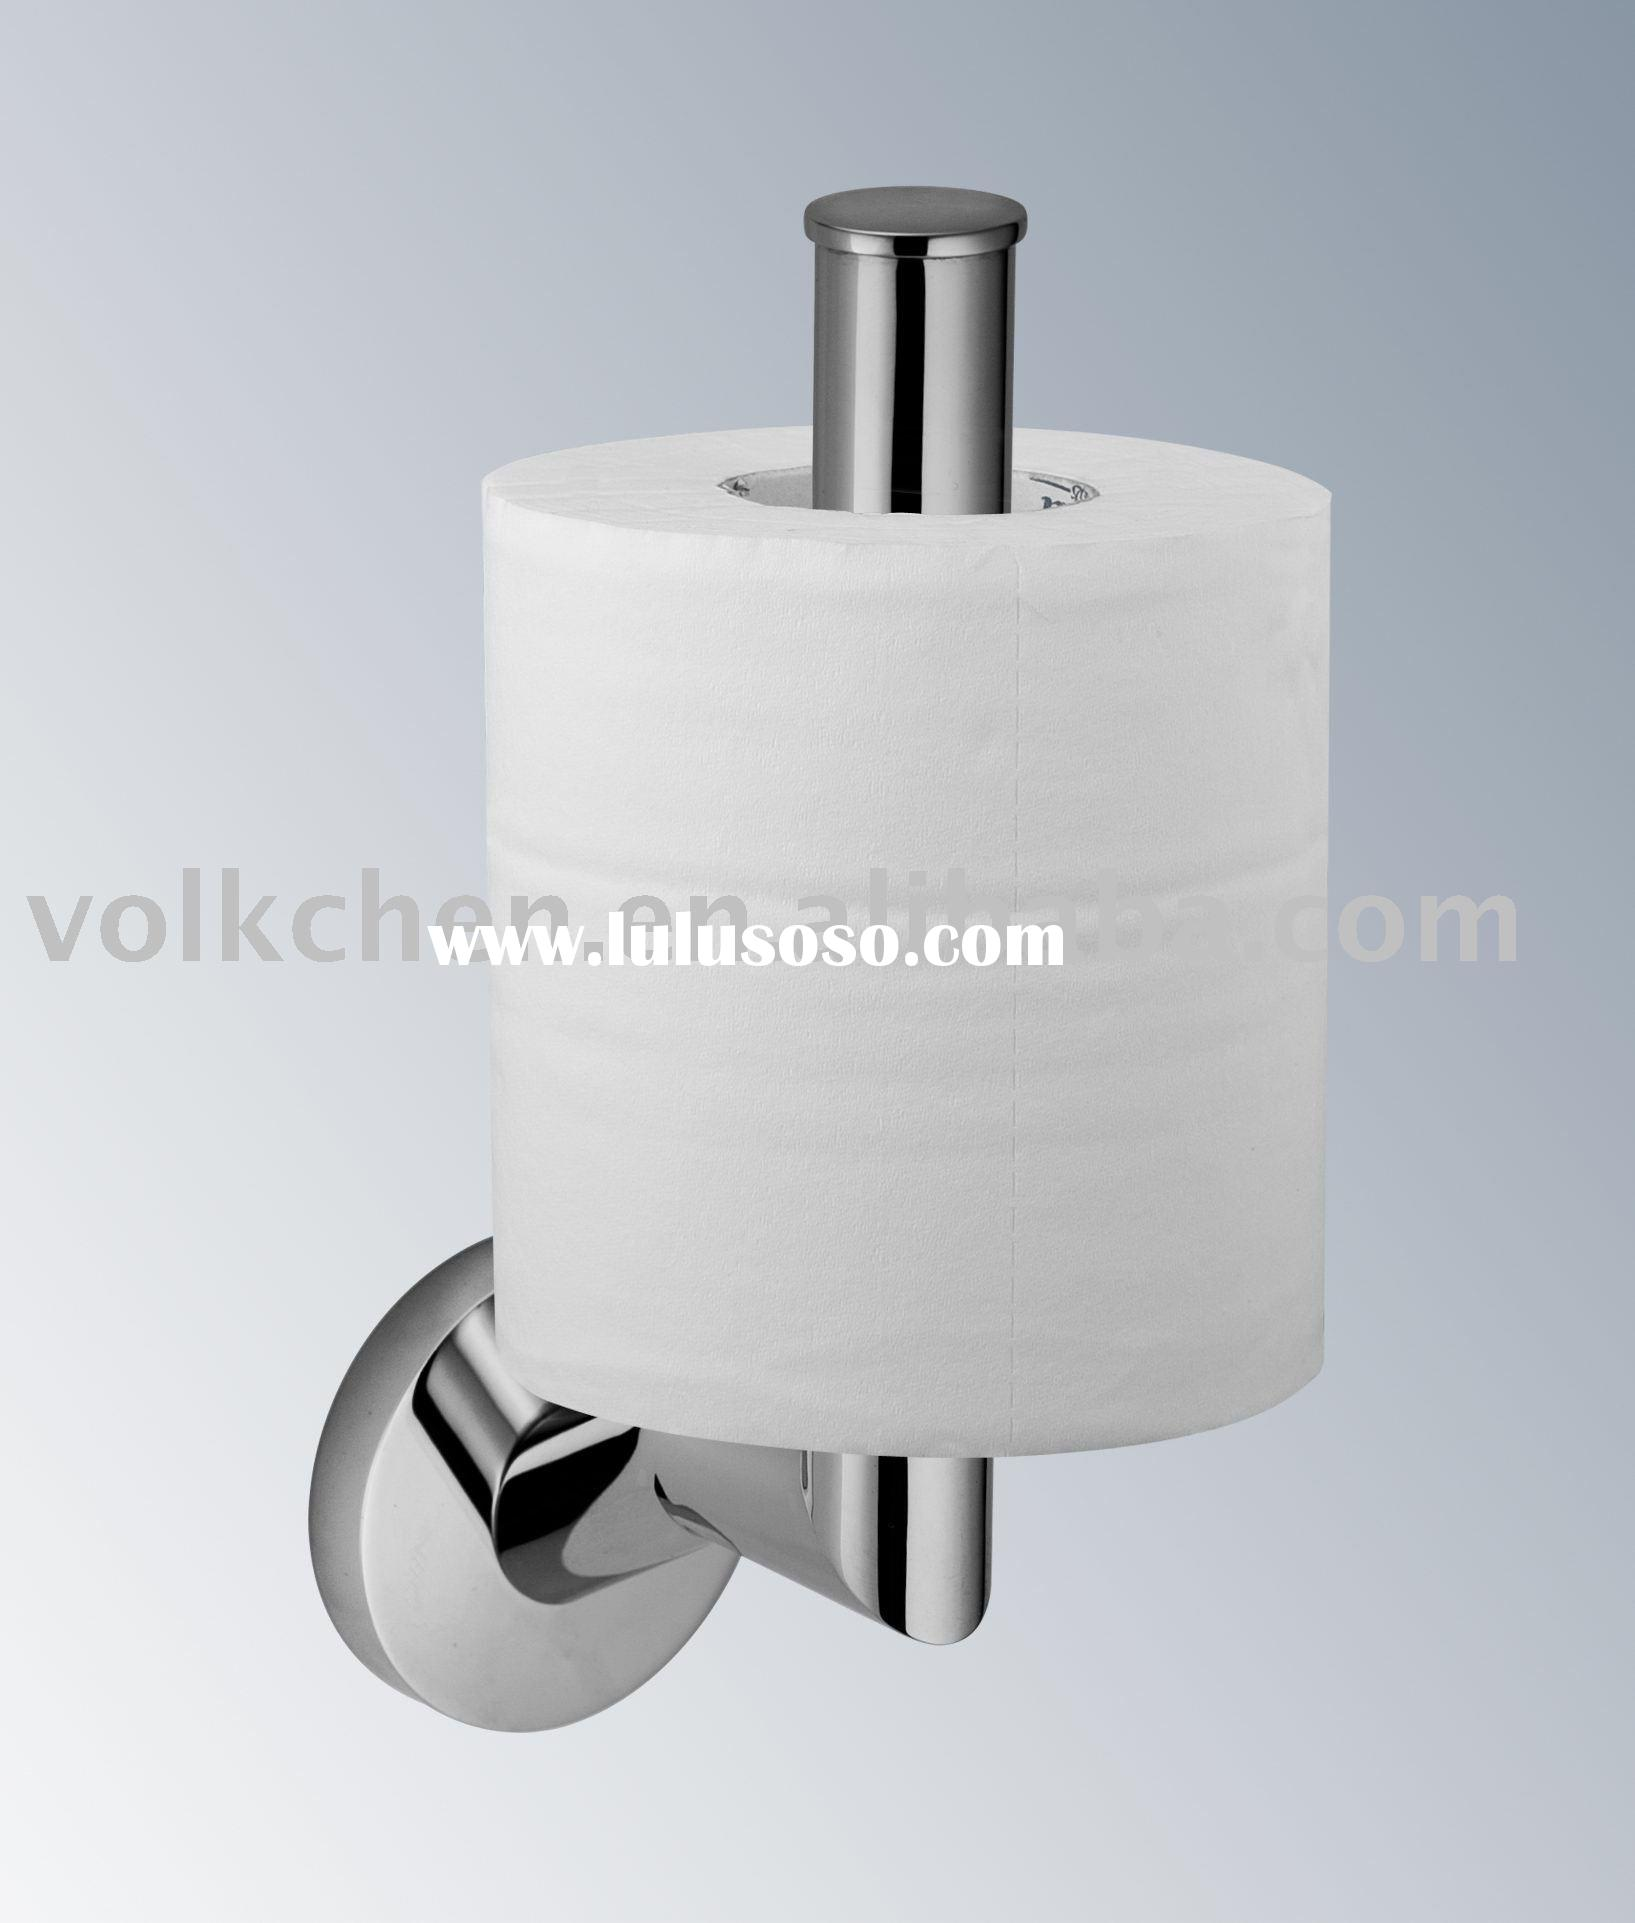 2011 new Stand Toilet Paper Holder 003-05 bathroom accessories